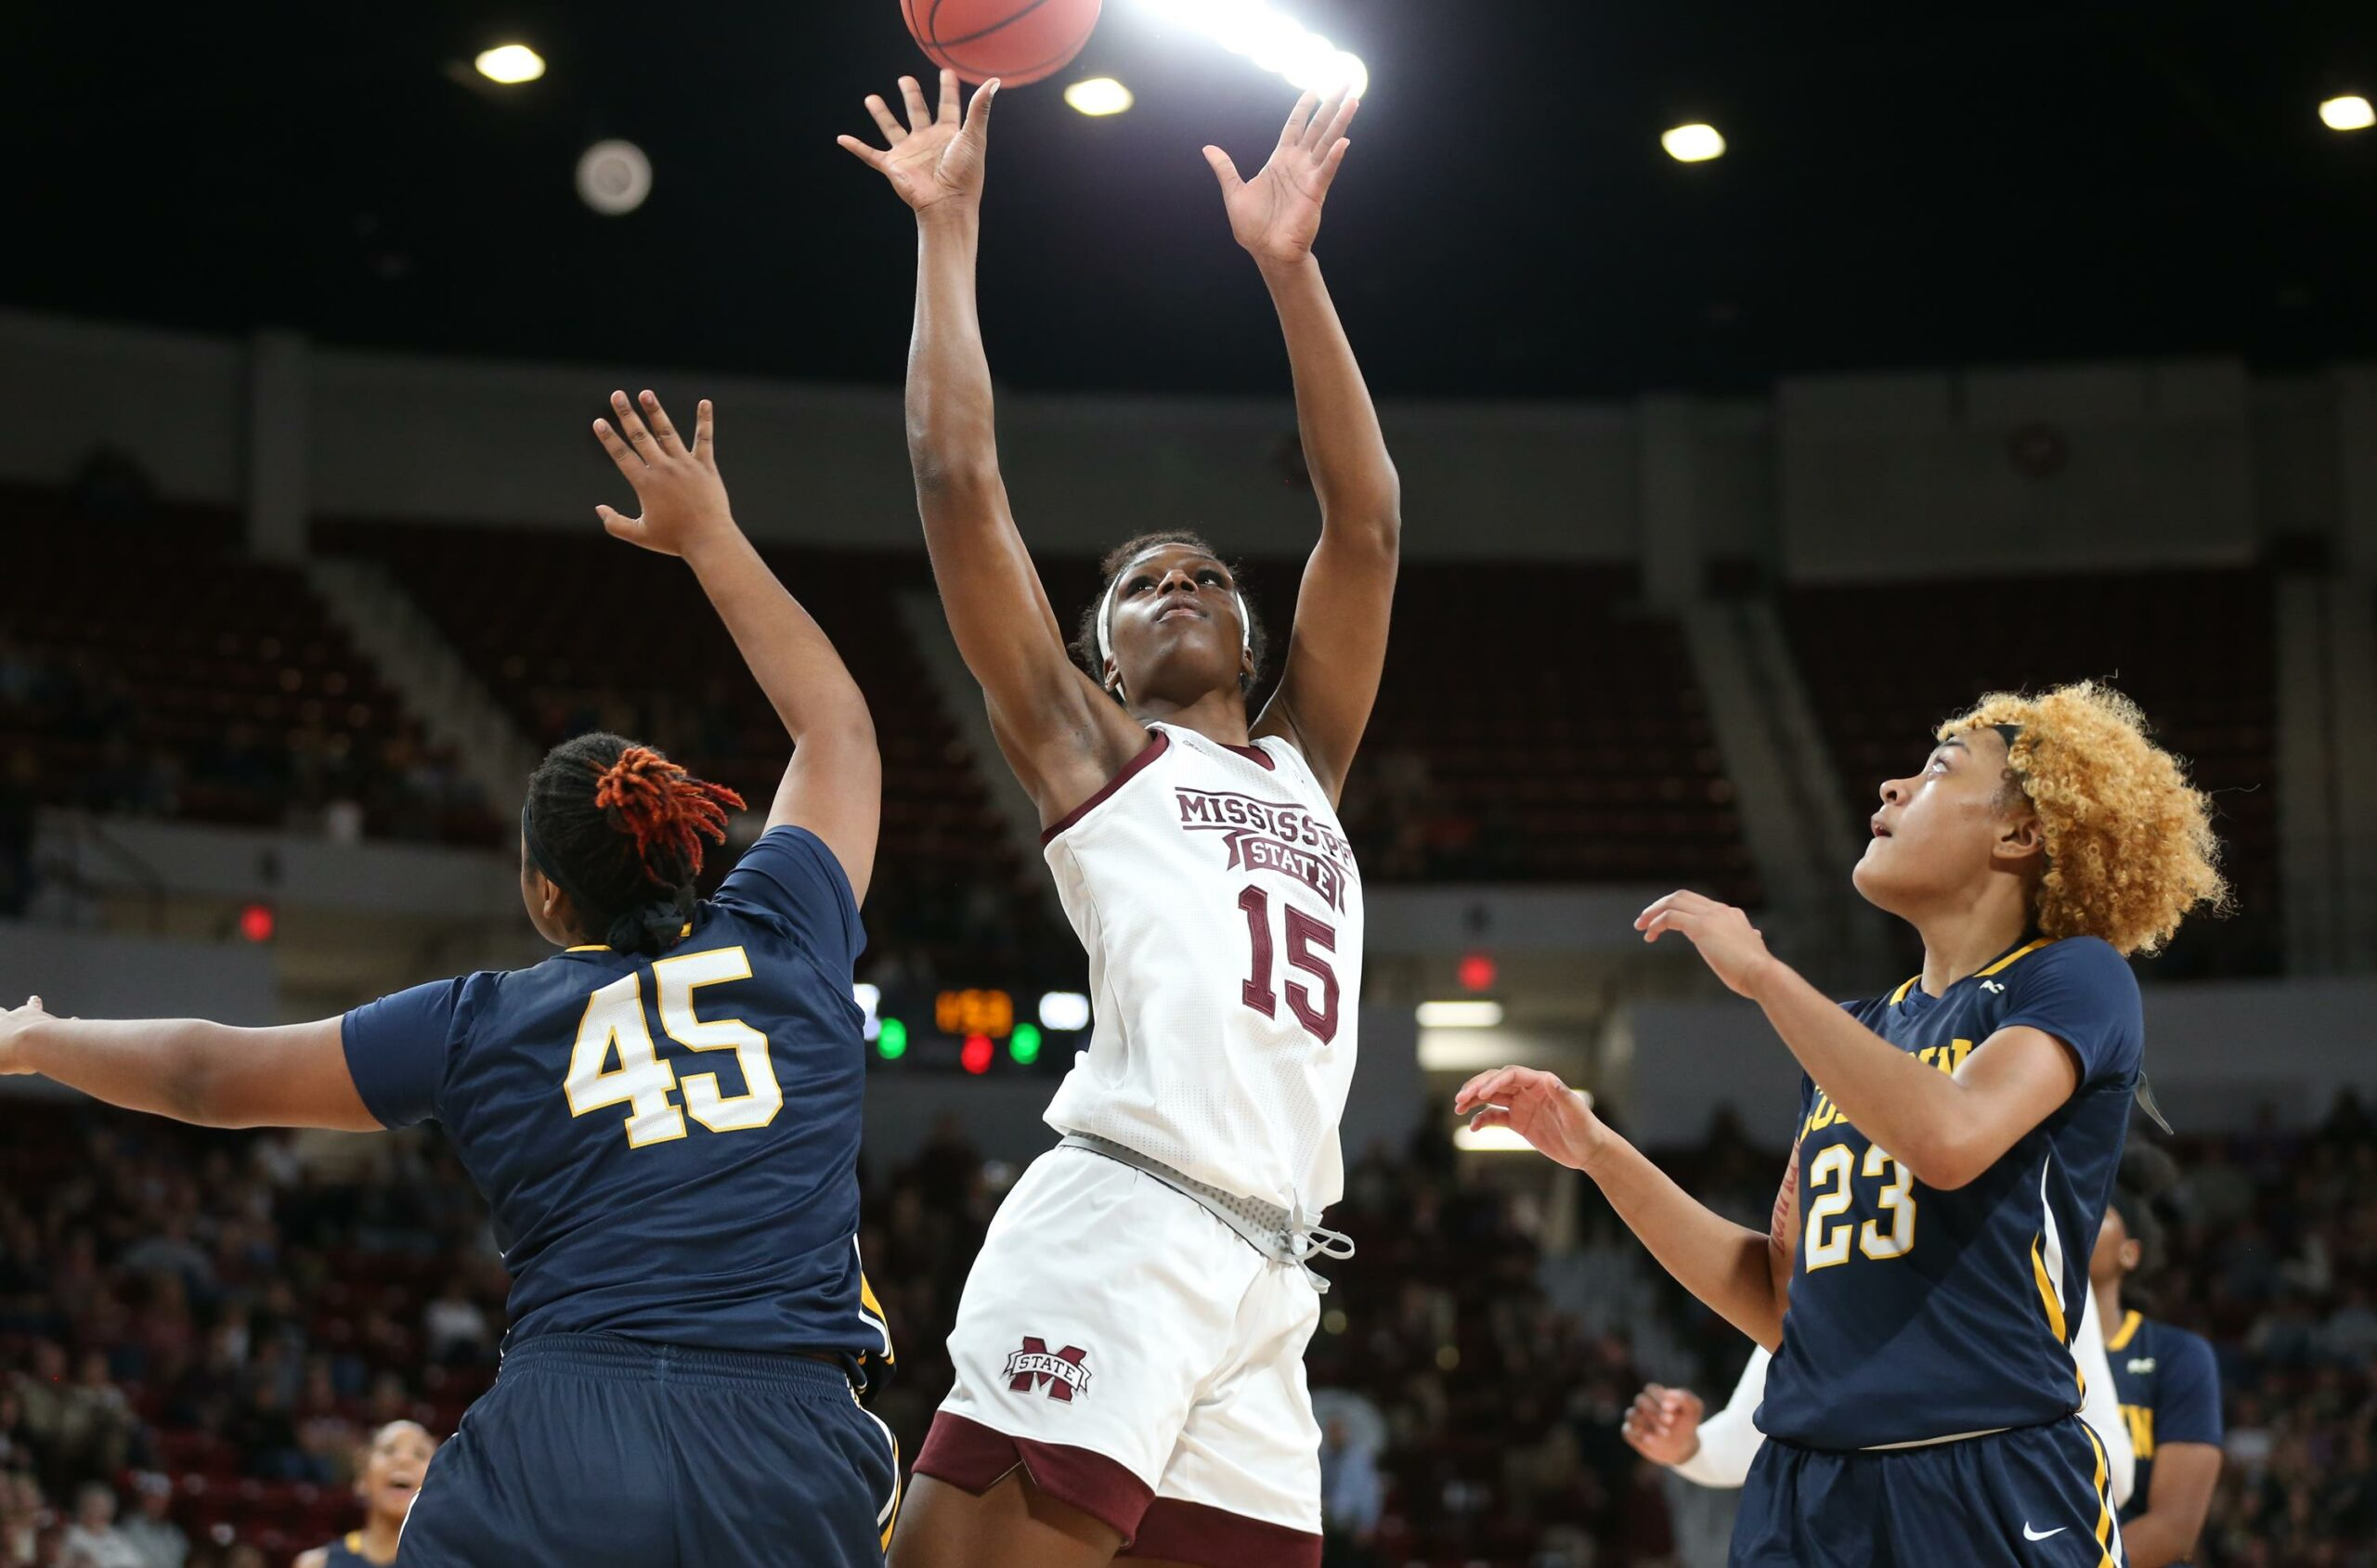 Mississippi State raises National Finalist banner before cruising to 110-38 win over Coppin State